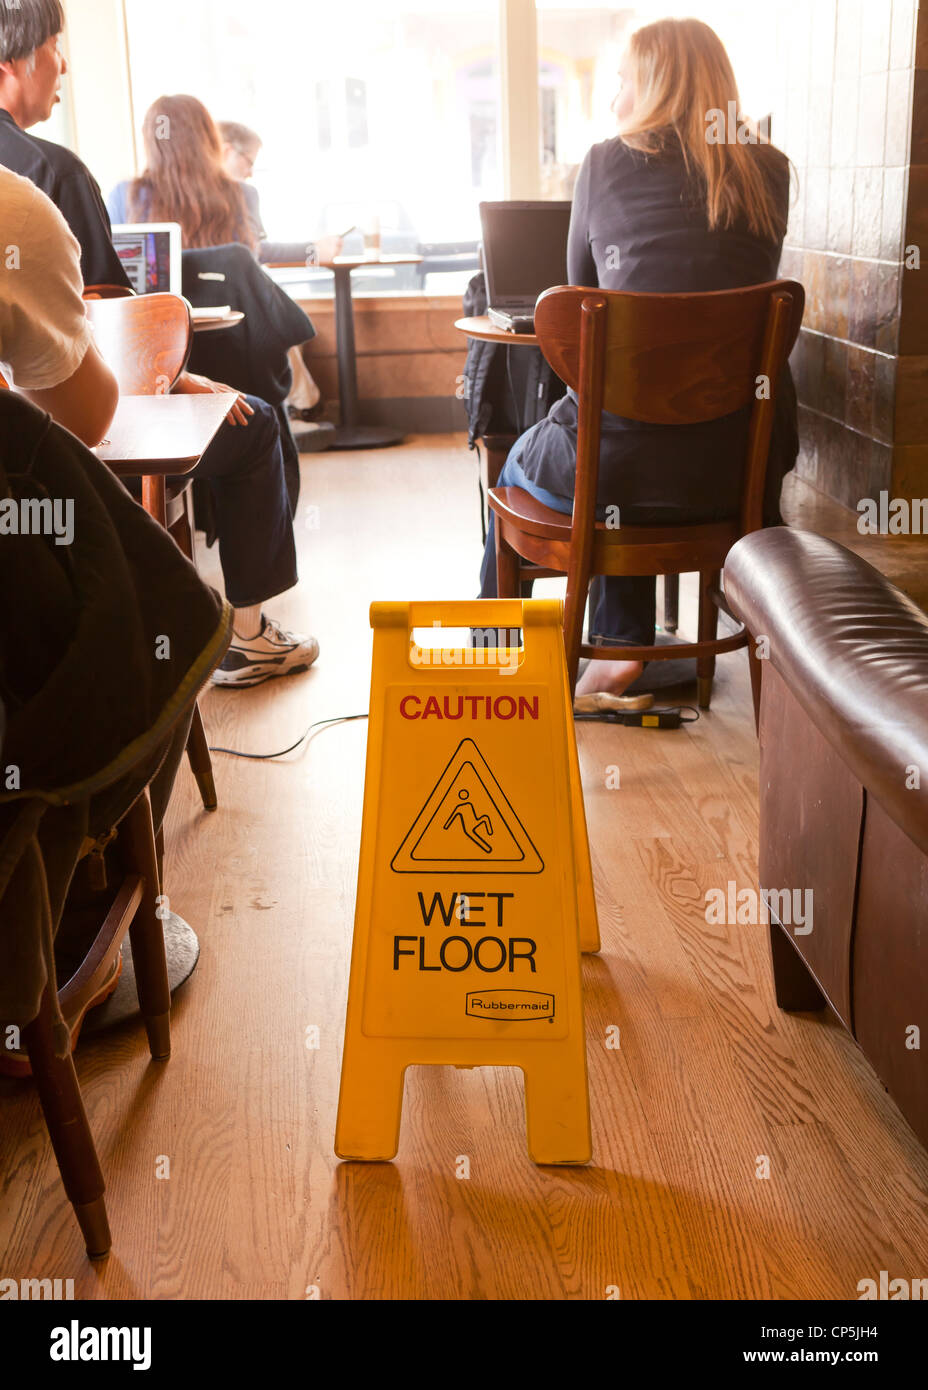 Wet floor safety sign in coffee shop - Stock Image